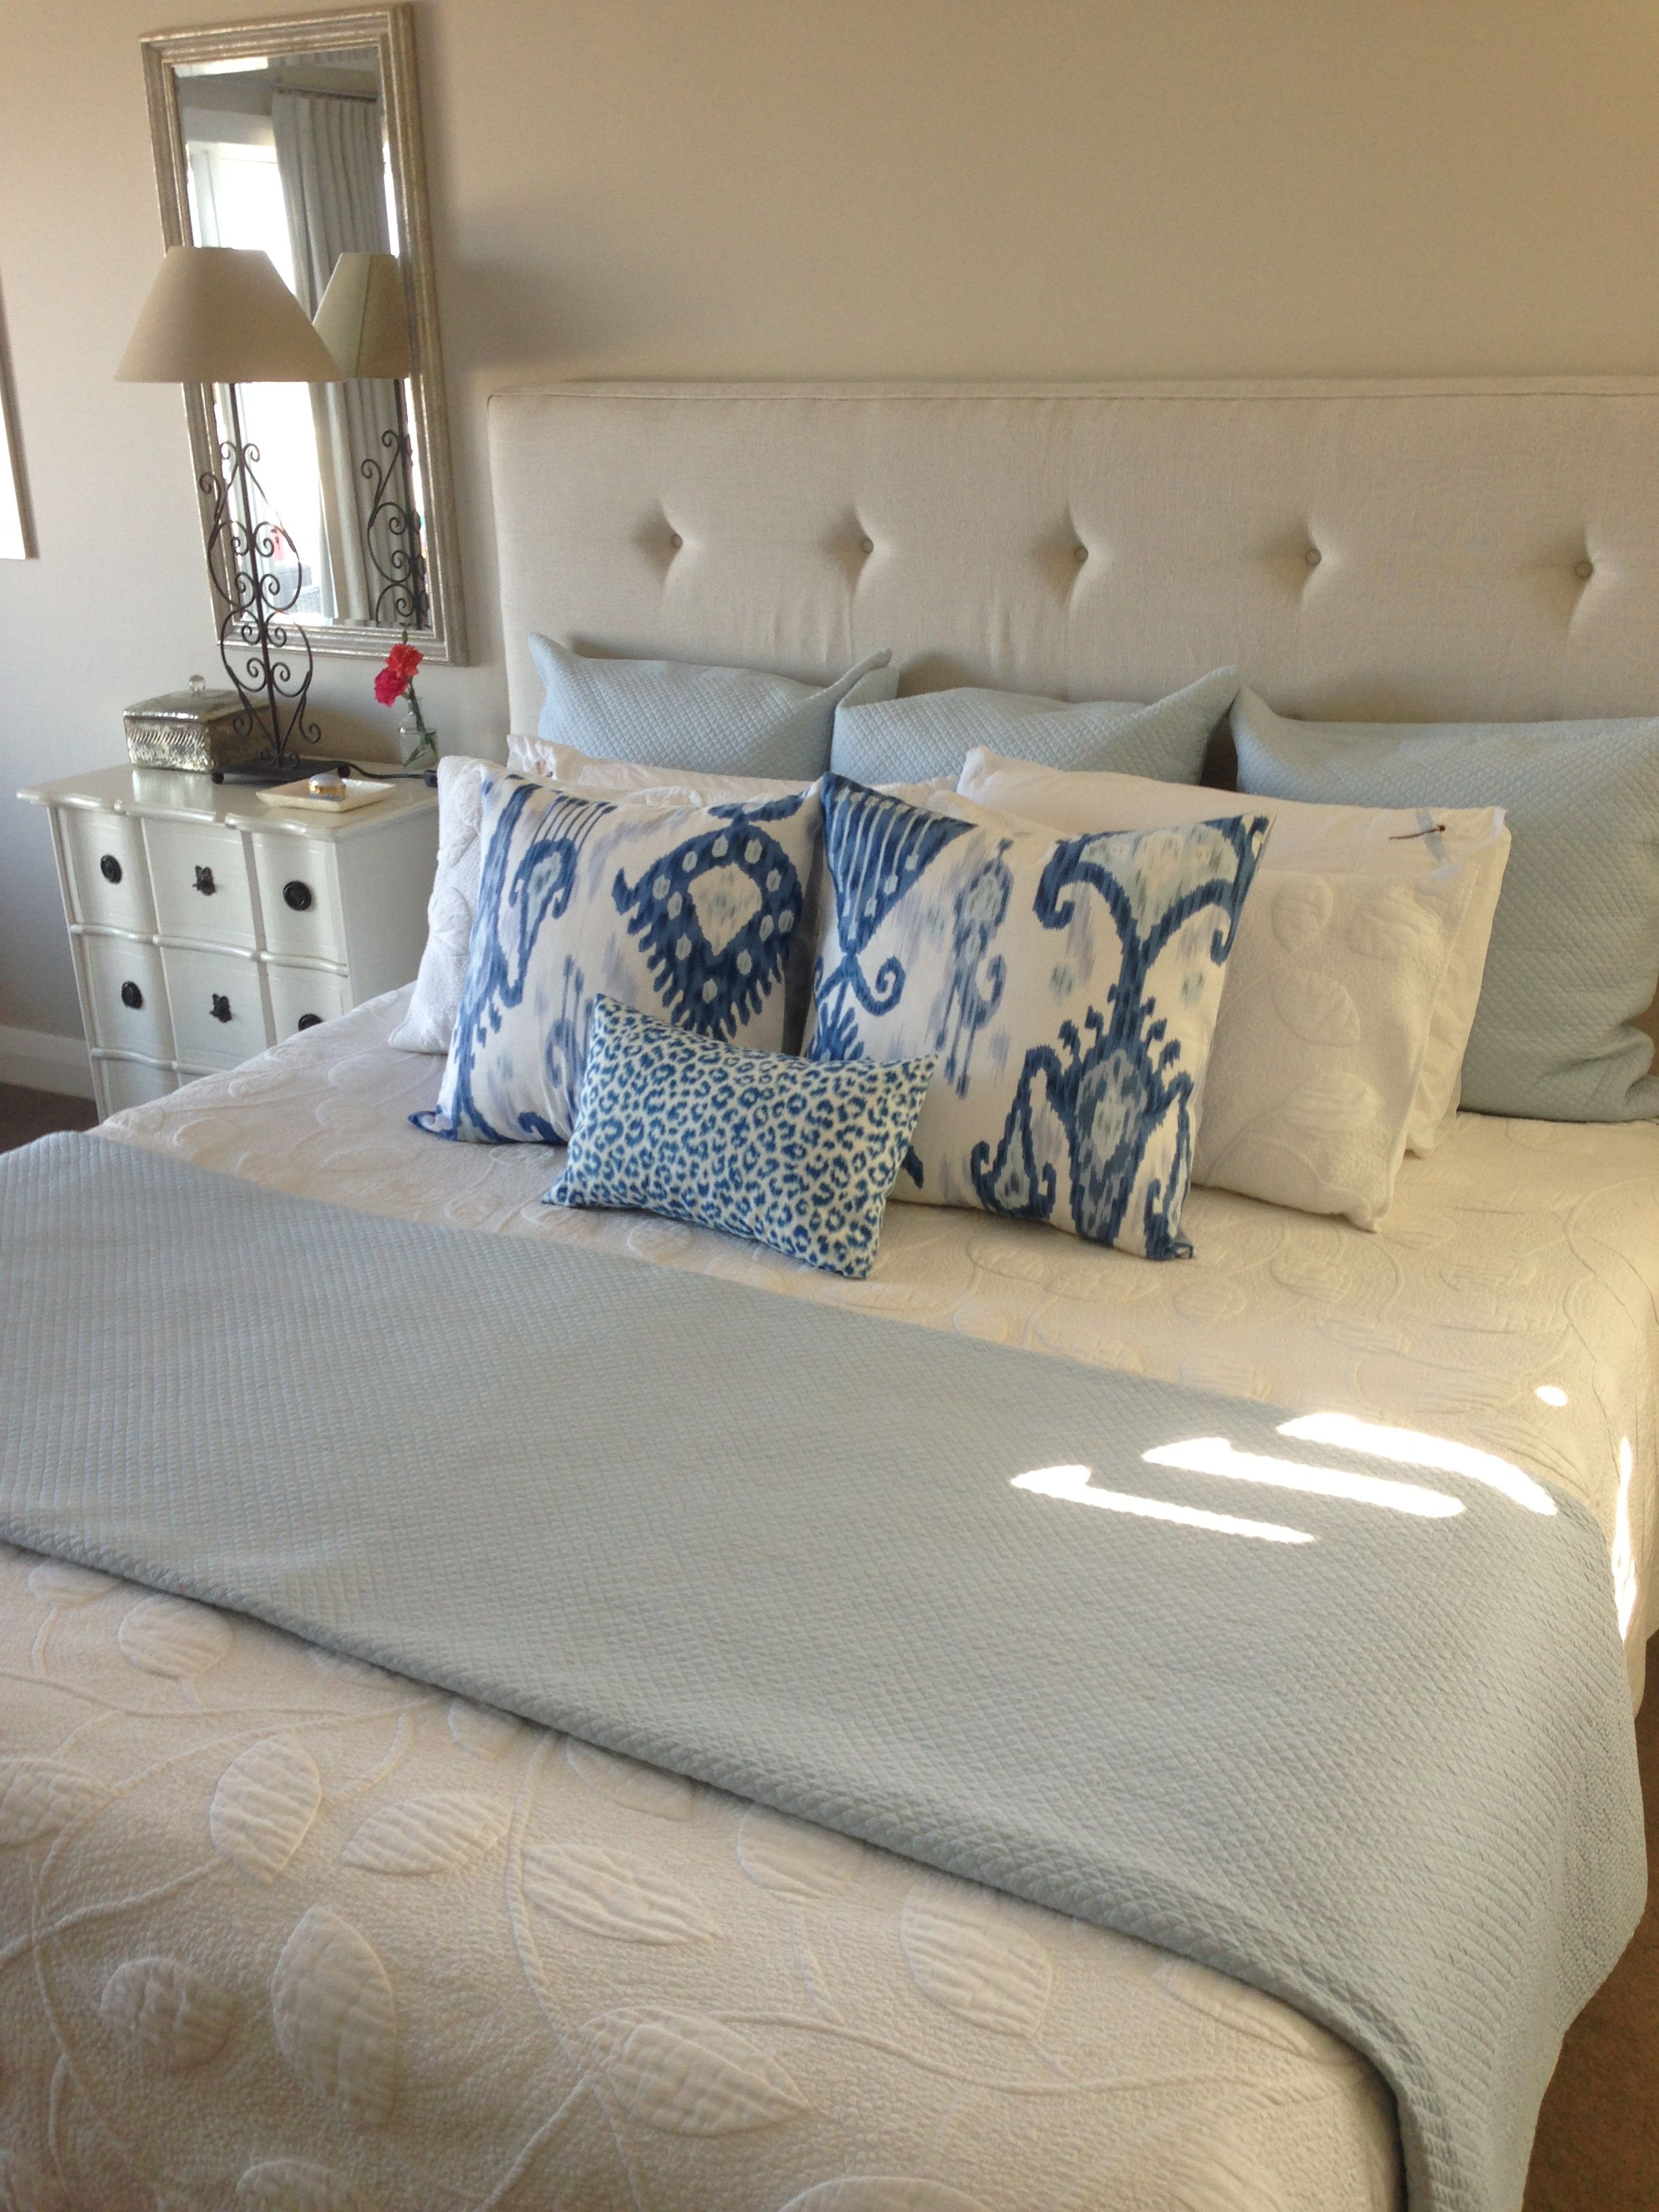 Upholstered bed head in Belgium Linen with Ikat scatter cushions ... : quilted bed head - Adamdwight.com